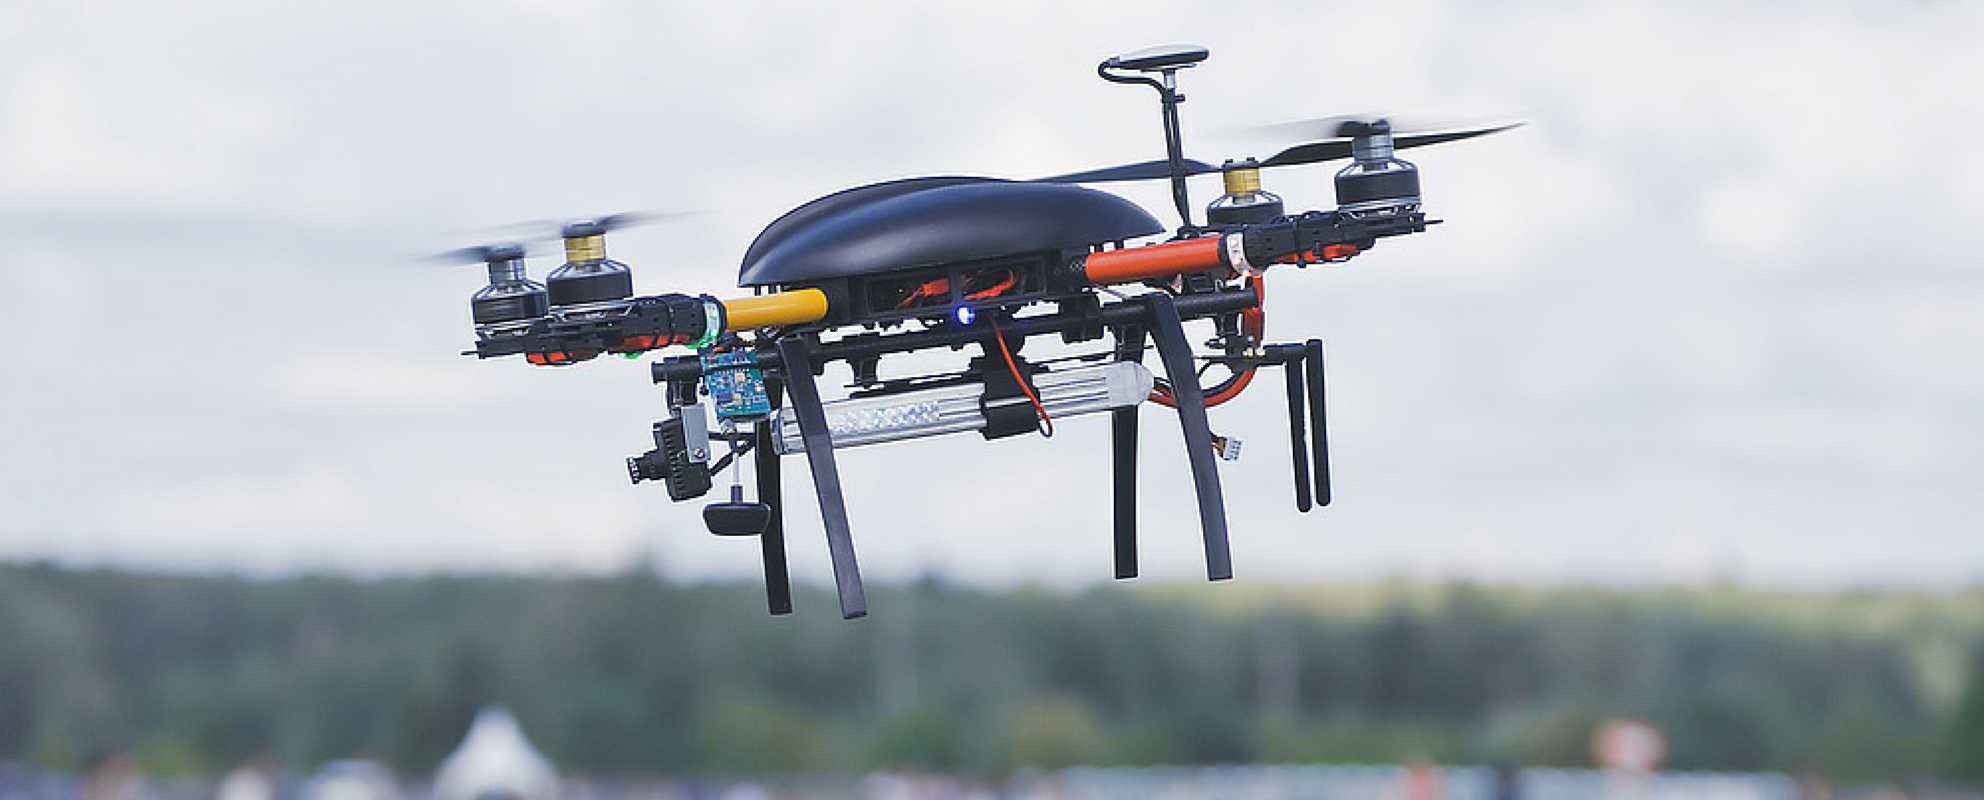 Regulators preparing to drop the hammer on drones